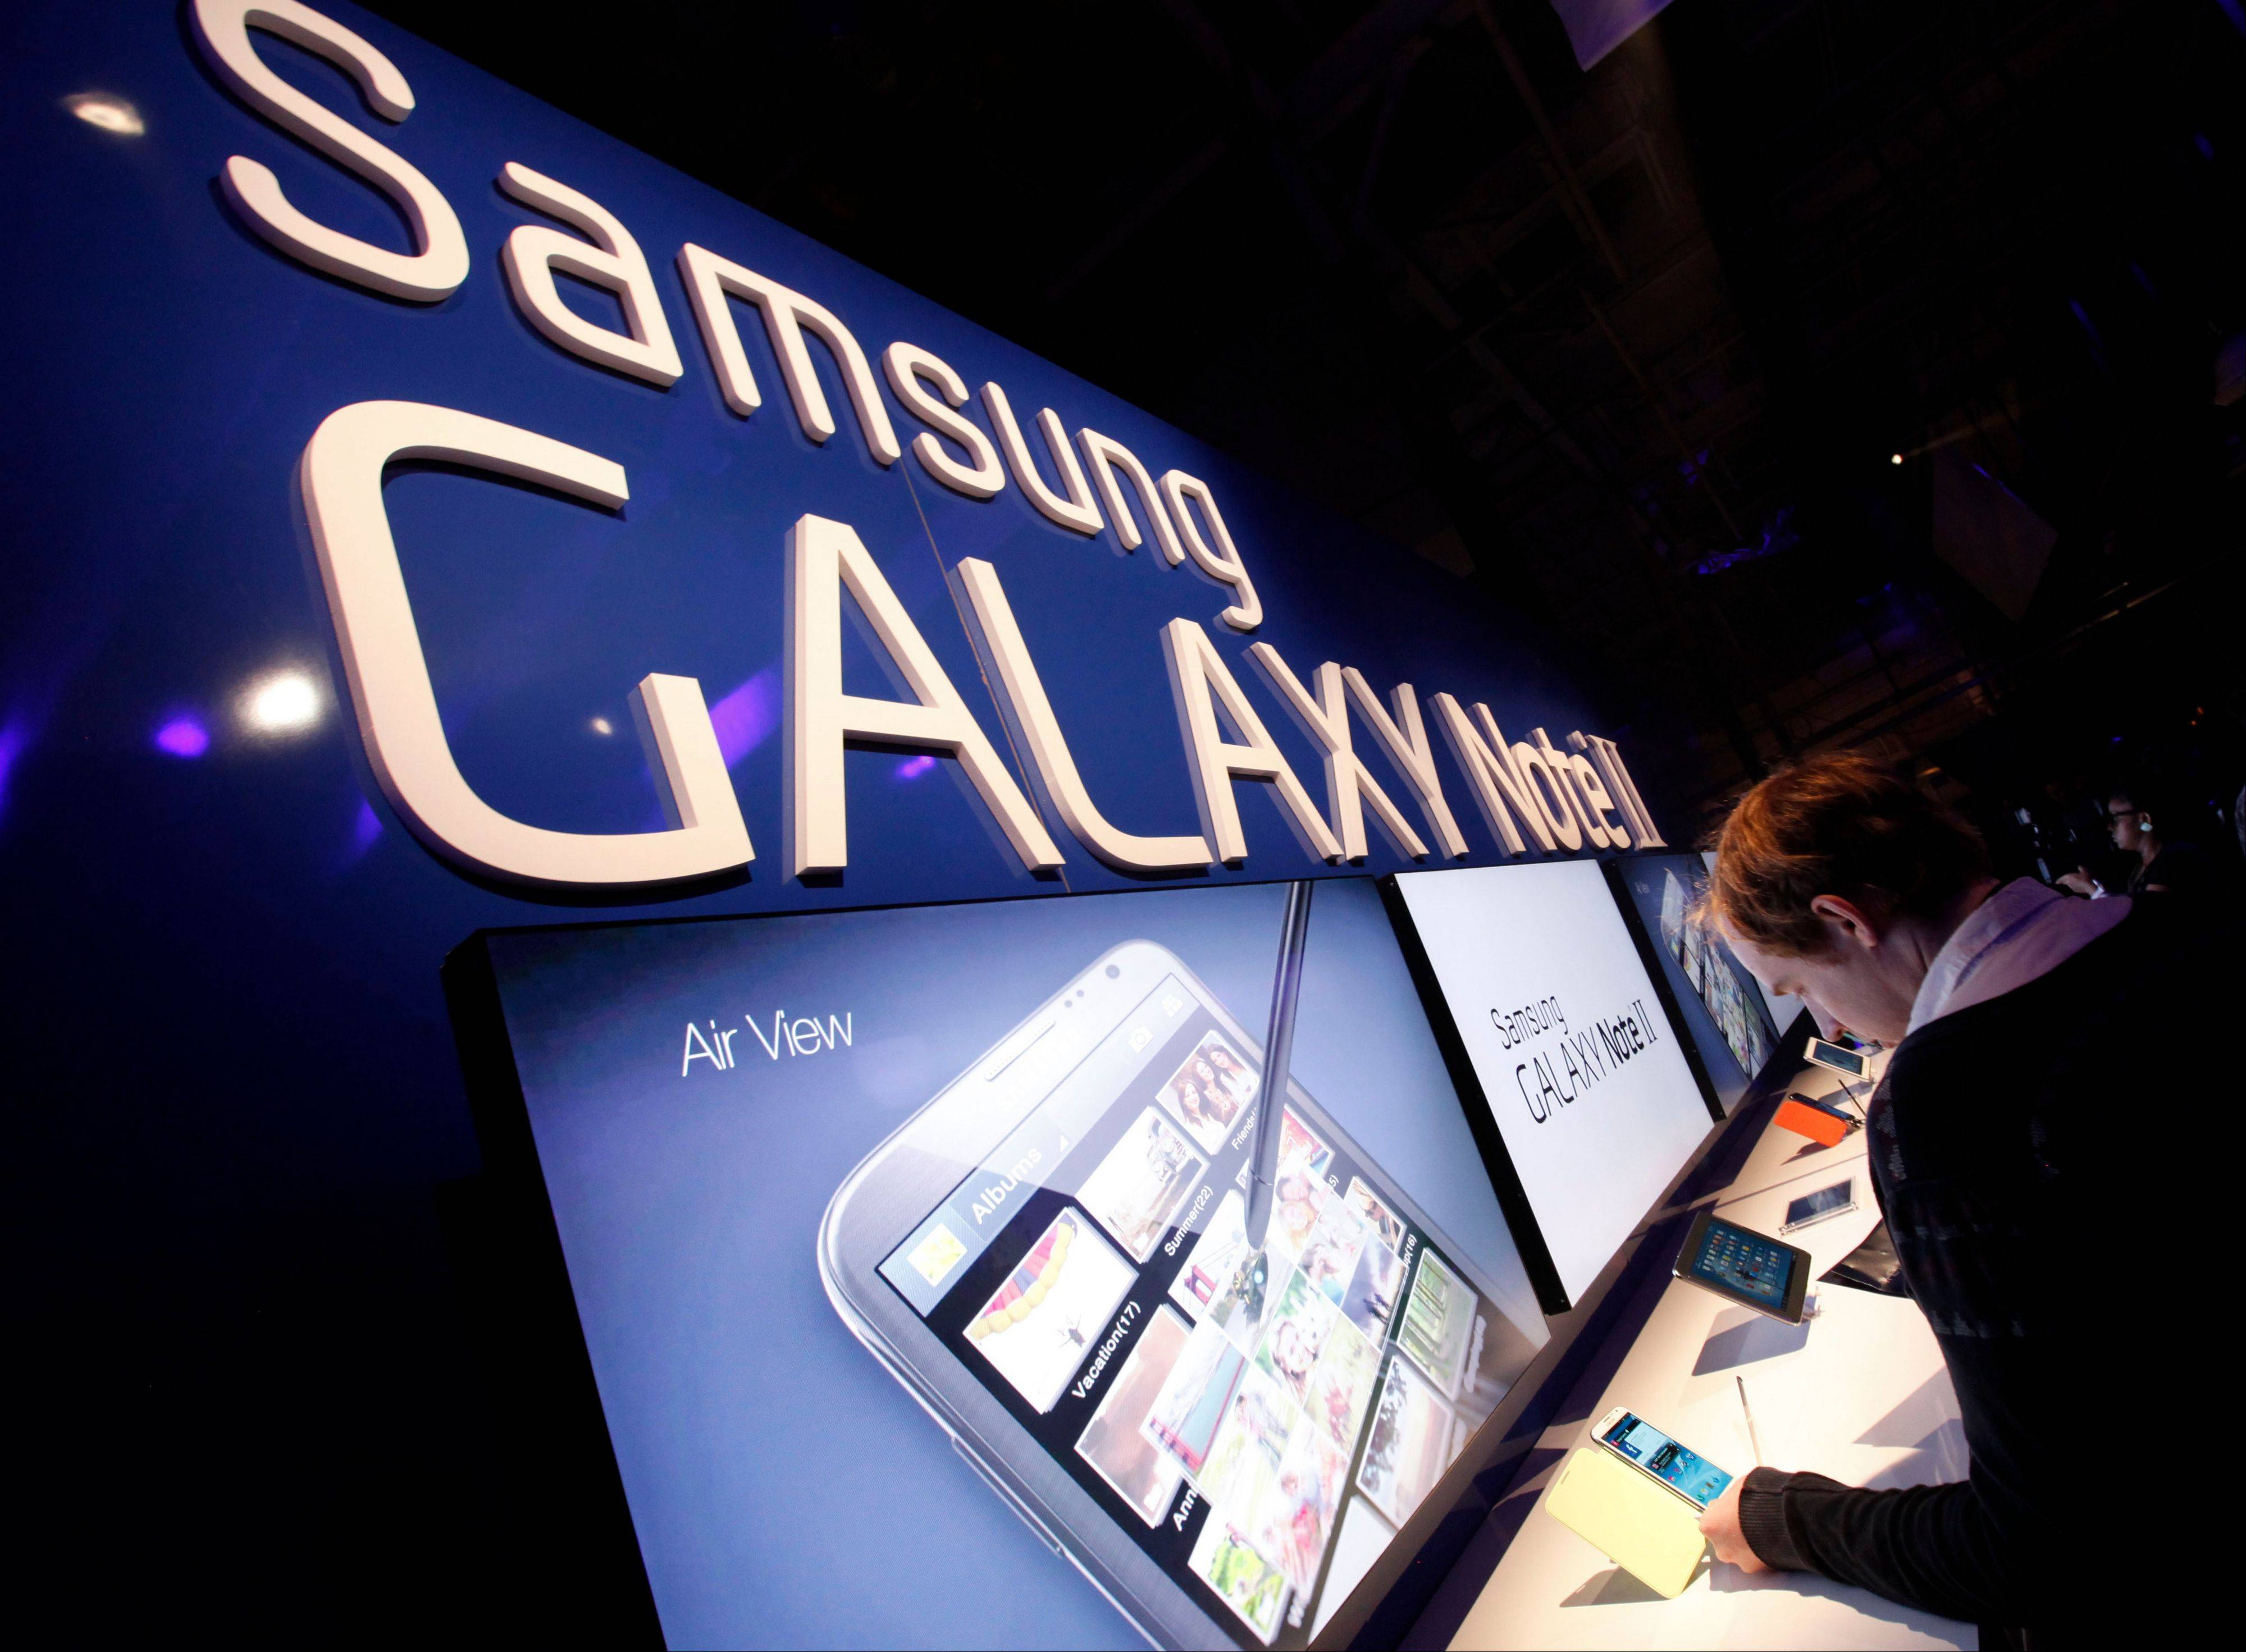 Attendees try out the new Samsung Galaxy Note II Wednesday during a launch event in New York. Aside from the 5.5 inch screen, the Note comes with a stylus and runs the latest version of Google's Android operating system, Jelly Bean.